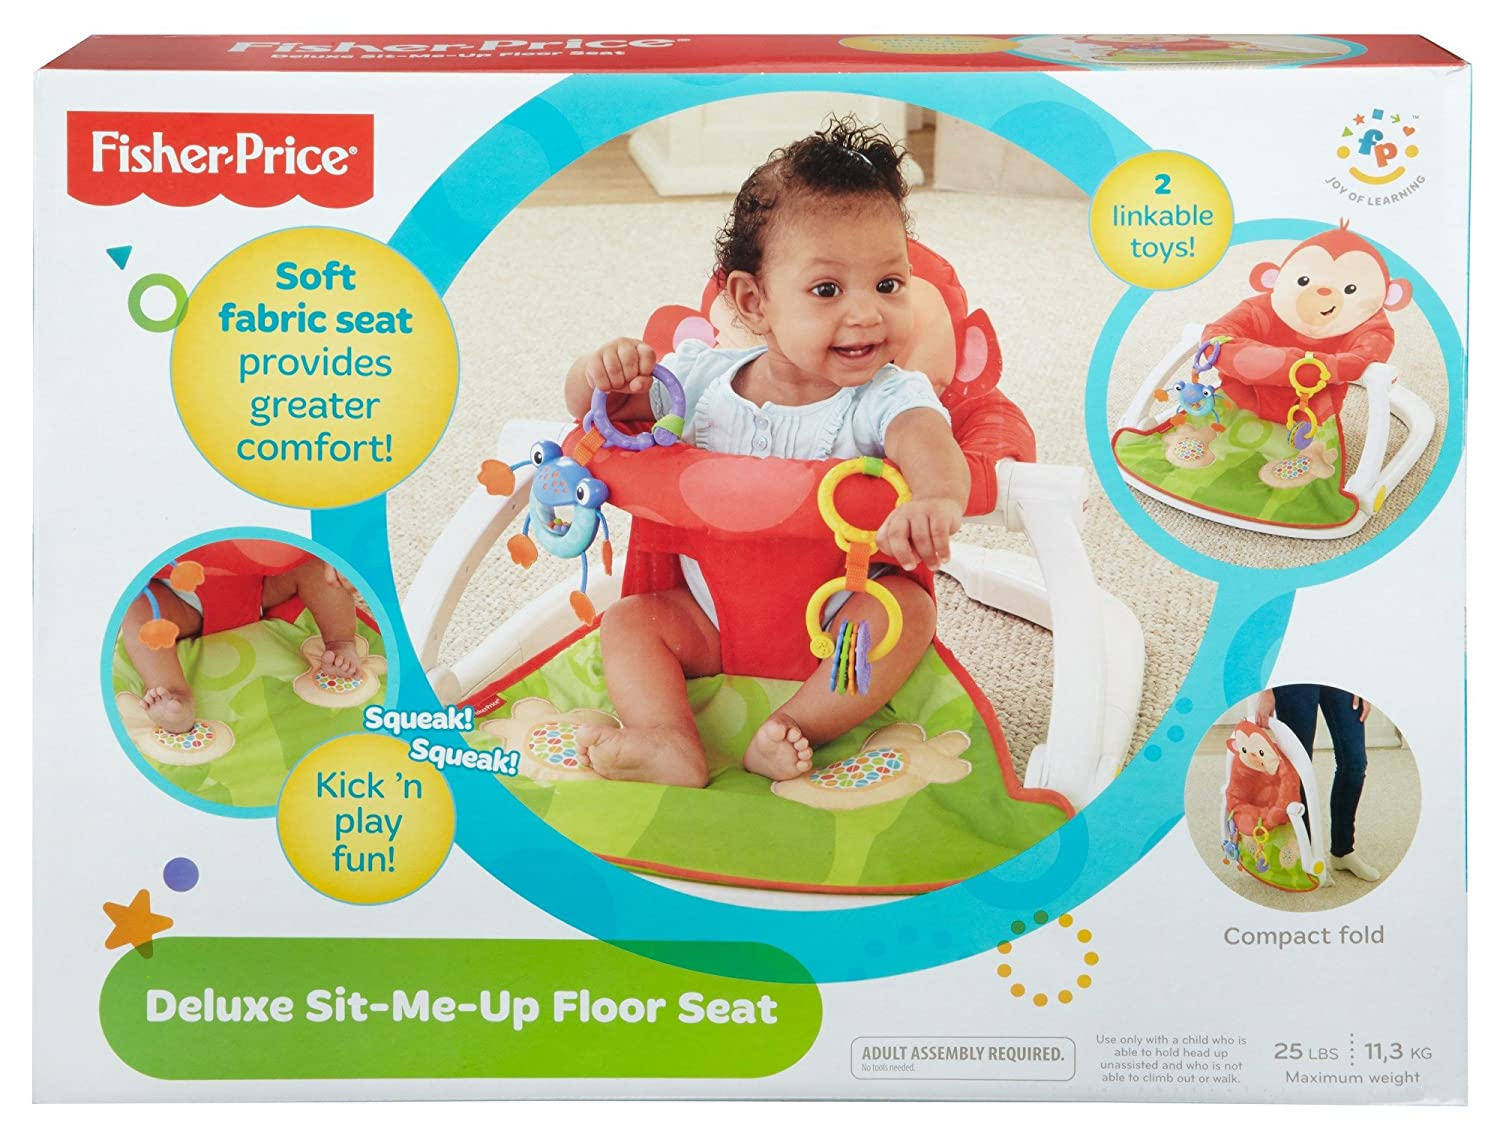 d0fc1cabcb32 Amazon.com   Fisher-Price Deluxe Sit-Me-Up Floor Seat   Infant ...